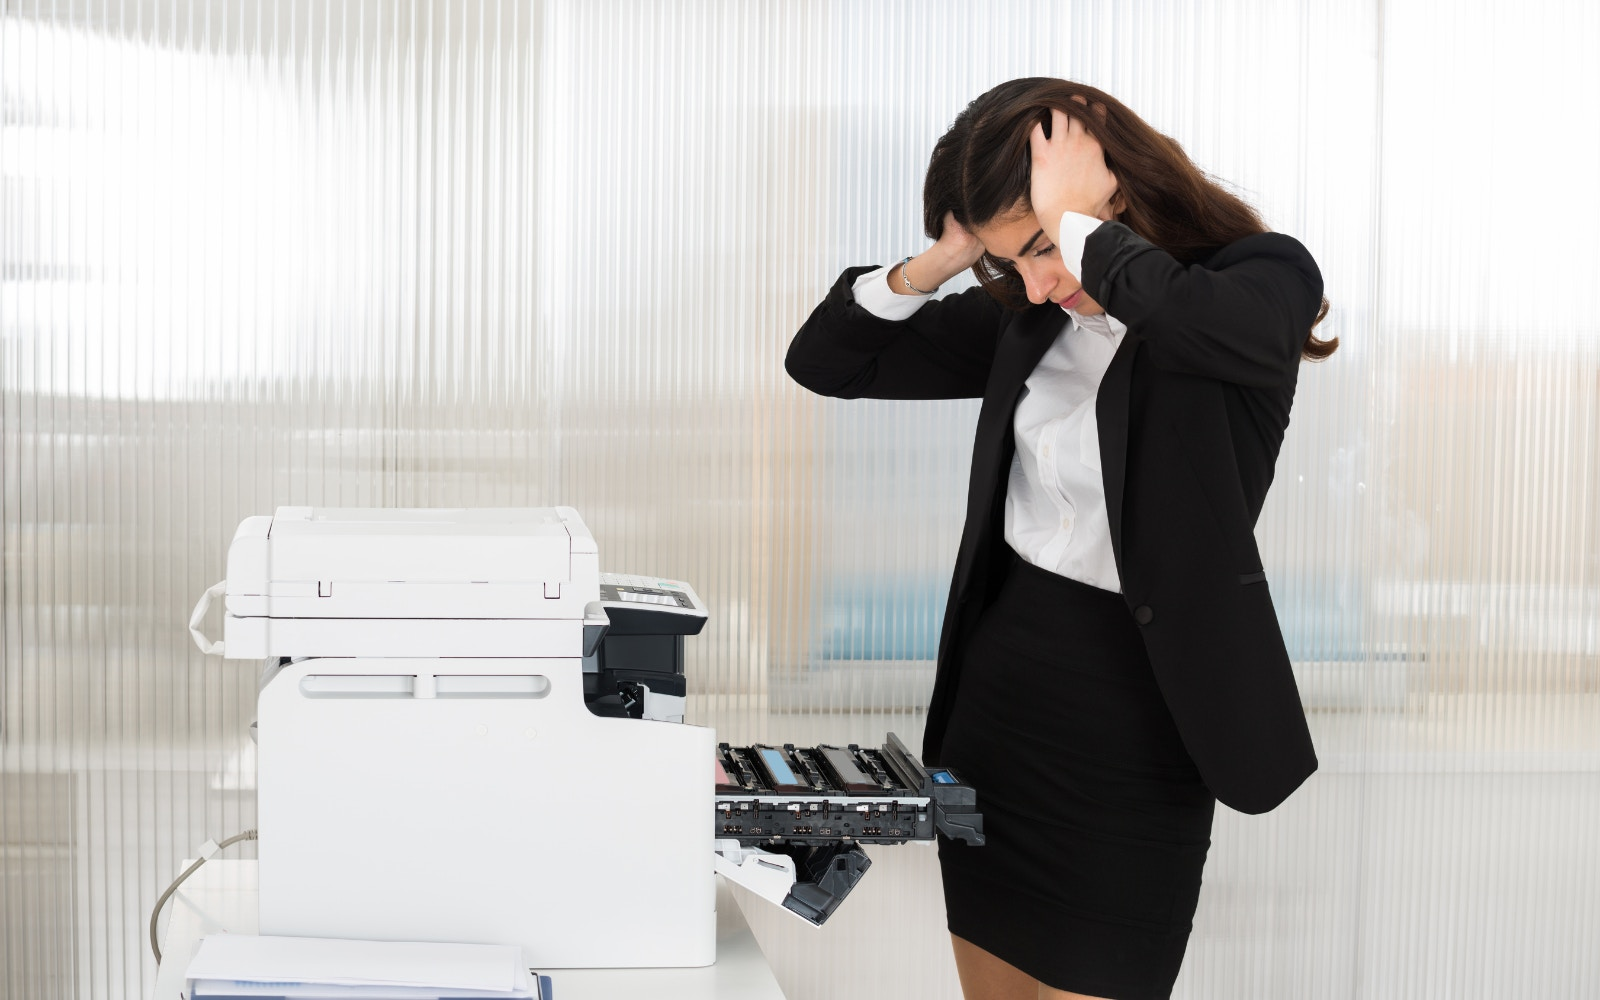 How to solve common printer problems - Part 1